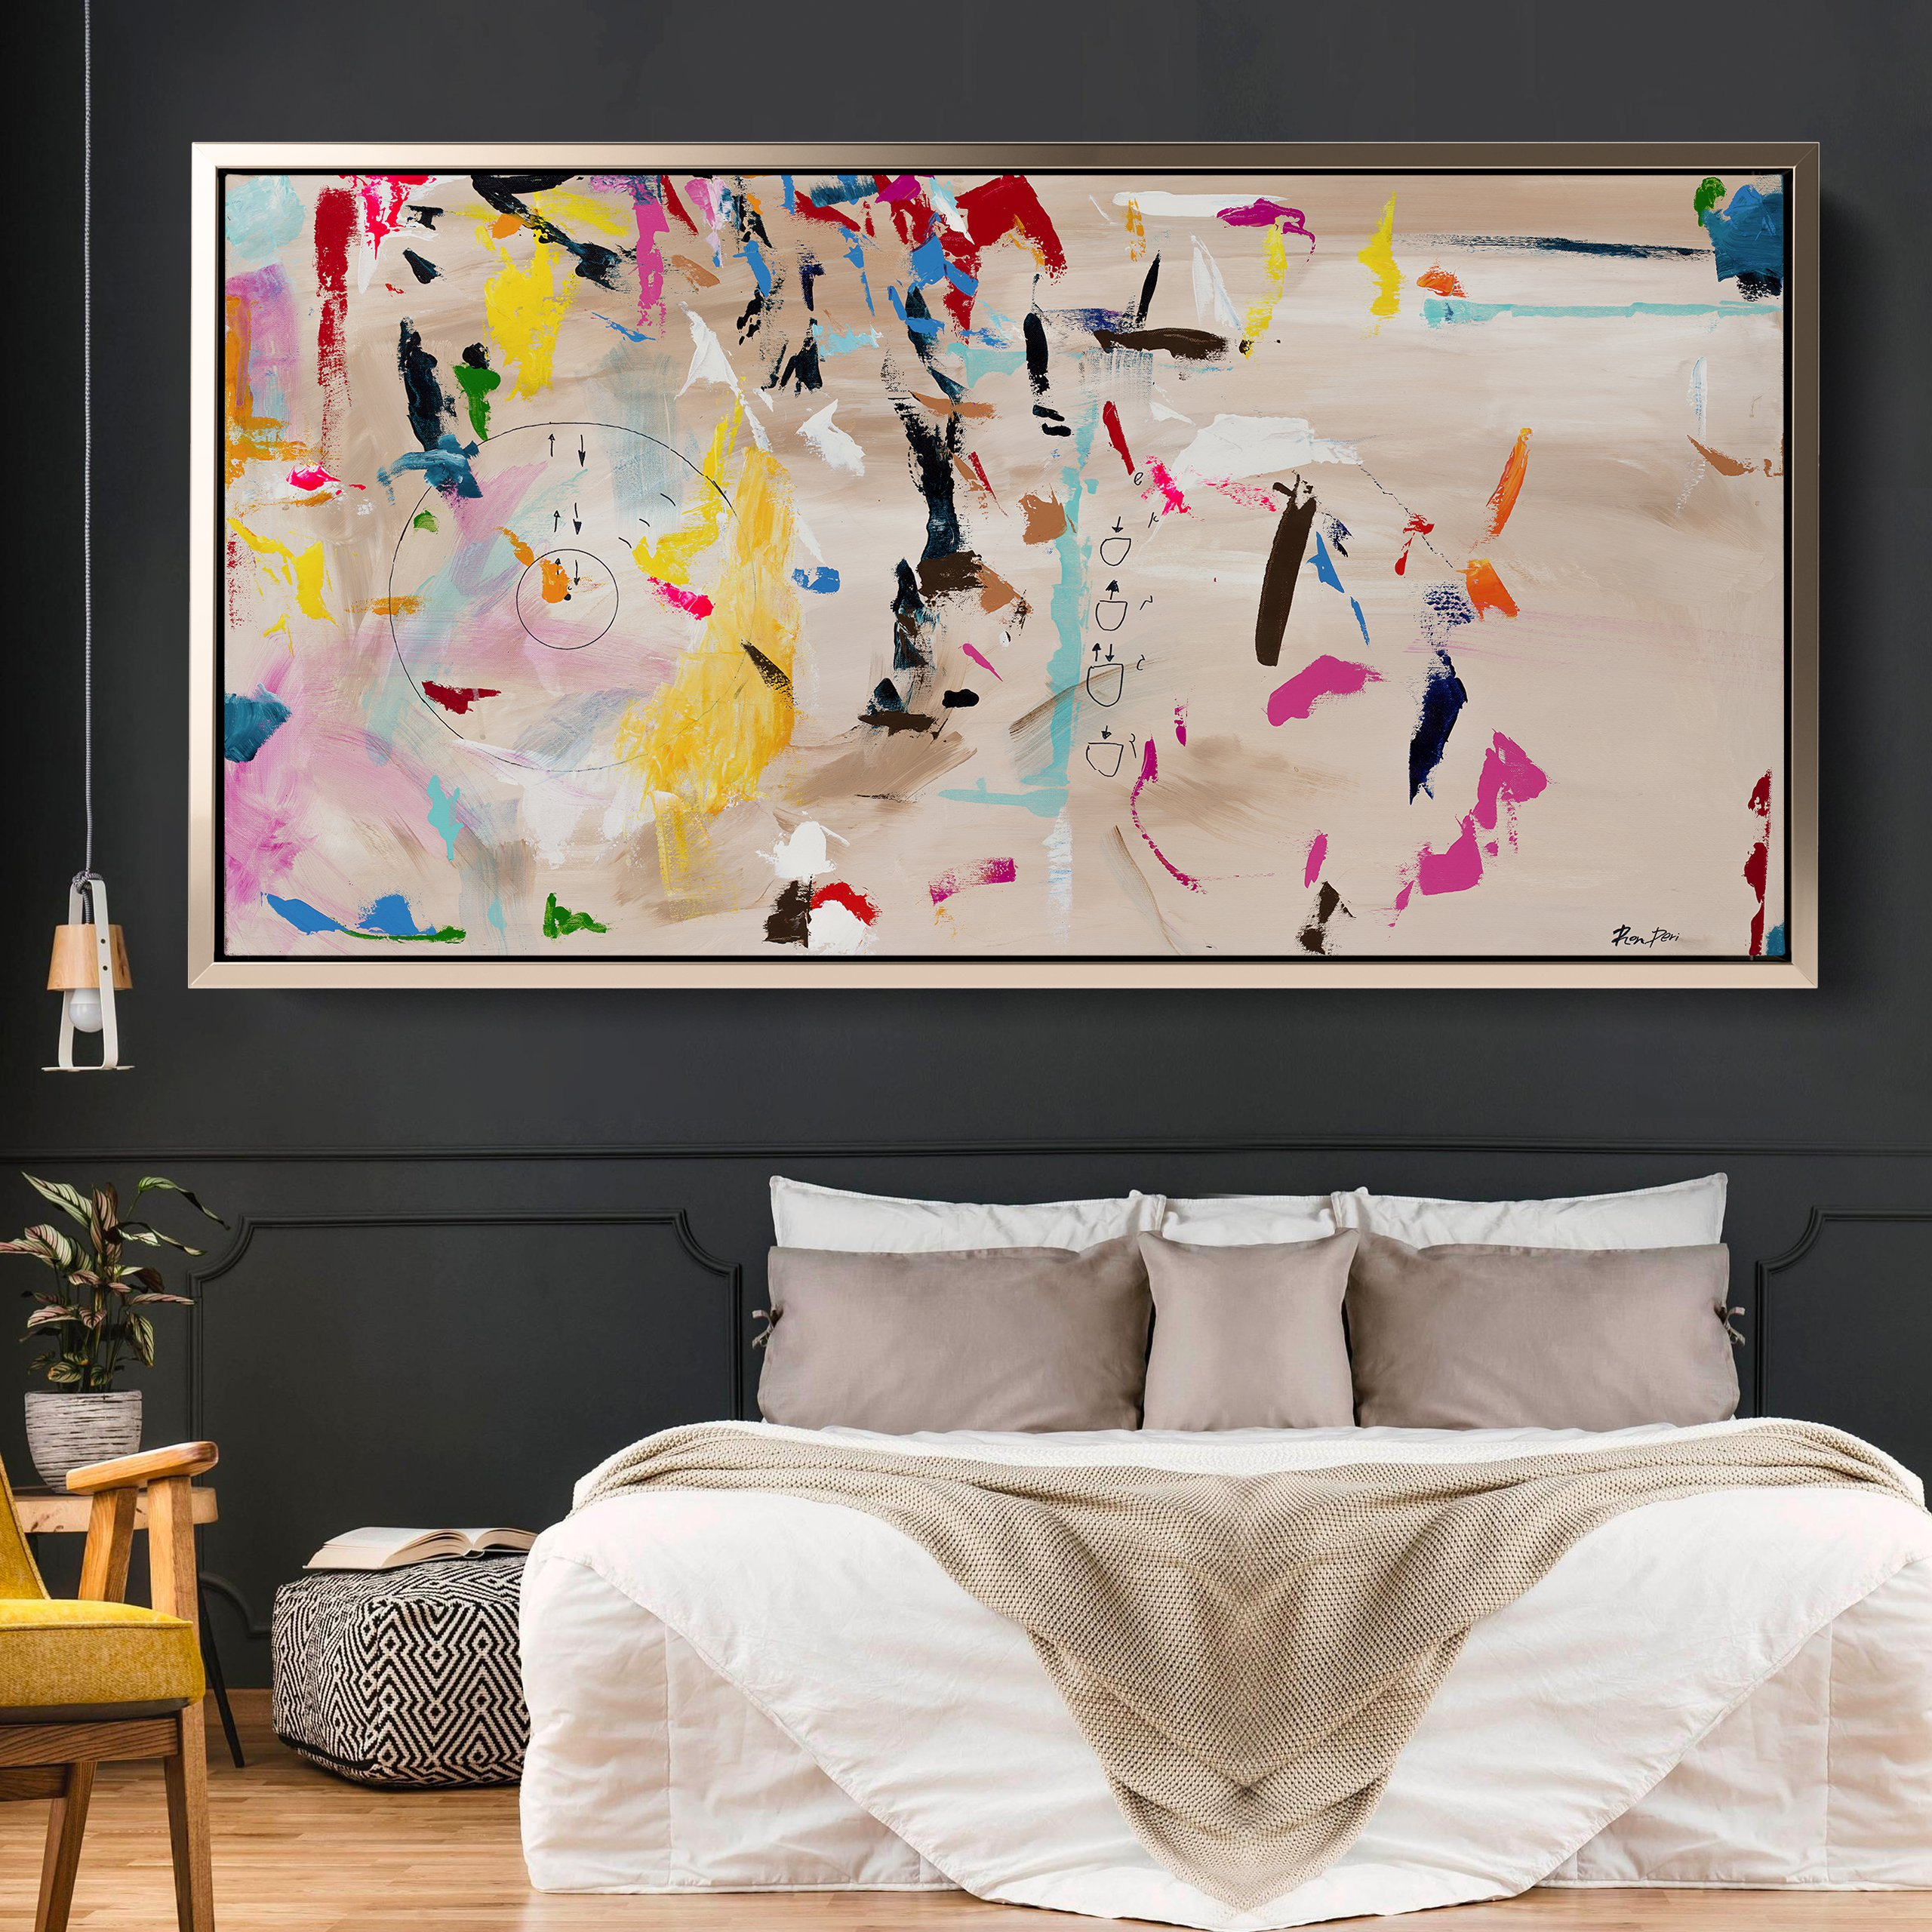 kabbalah-ron-deri-5-large-abstract-art-painting-print-modern-art